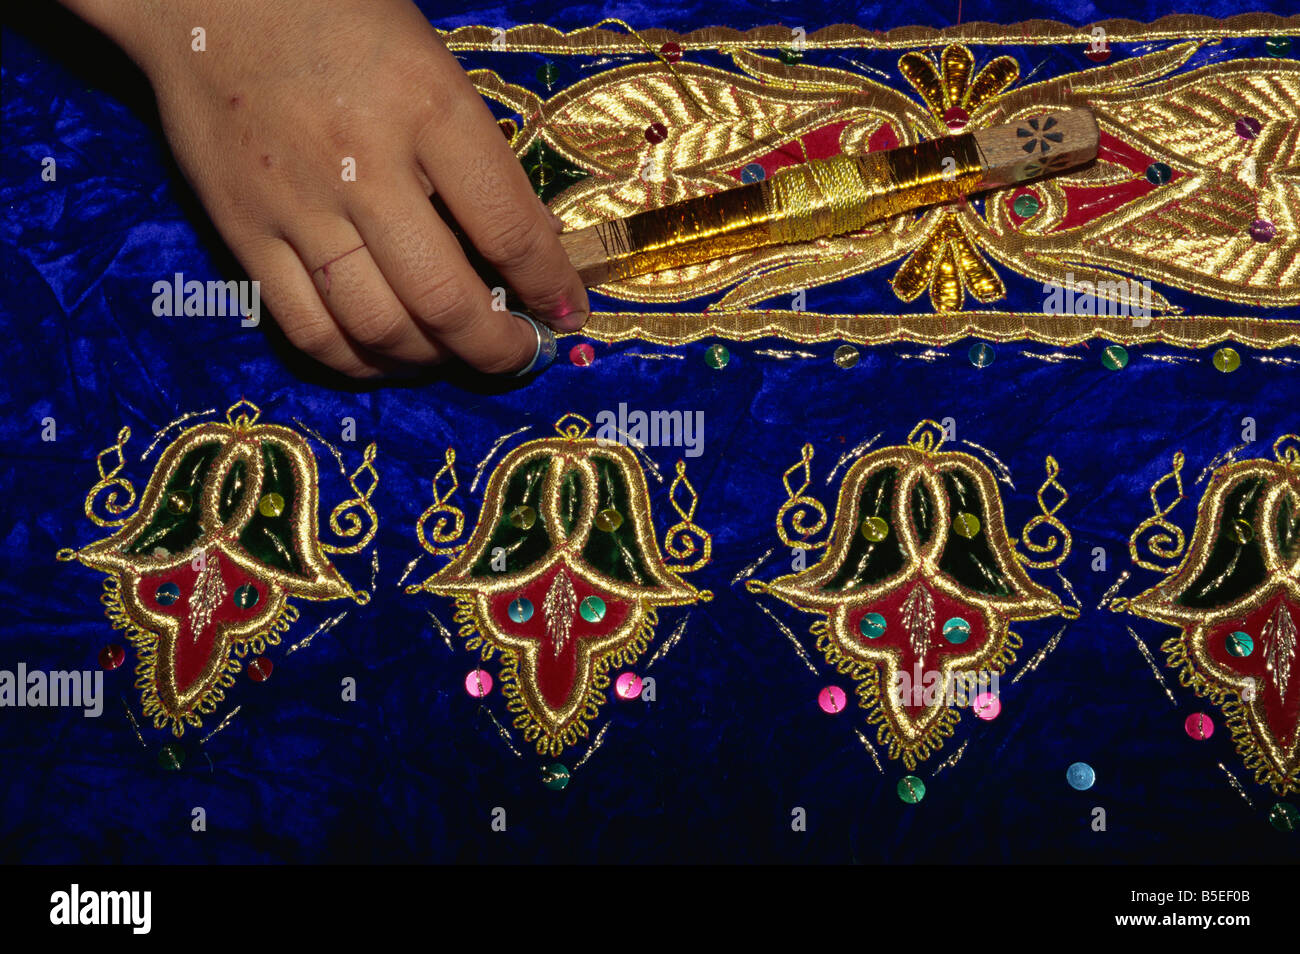 Detail of gold embroidery work in embroidery factory, Bukhara, Uzbekistan, Central Asia - Stock Image